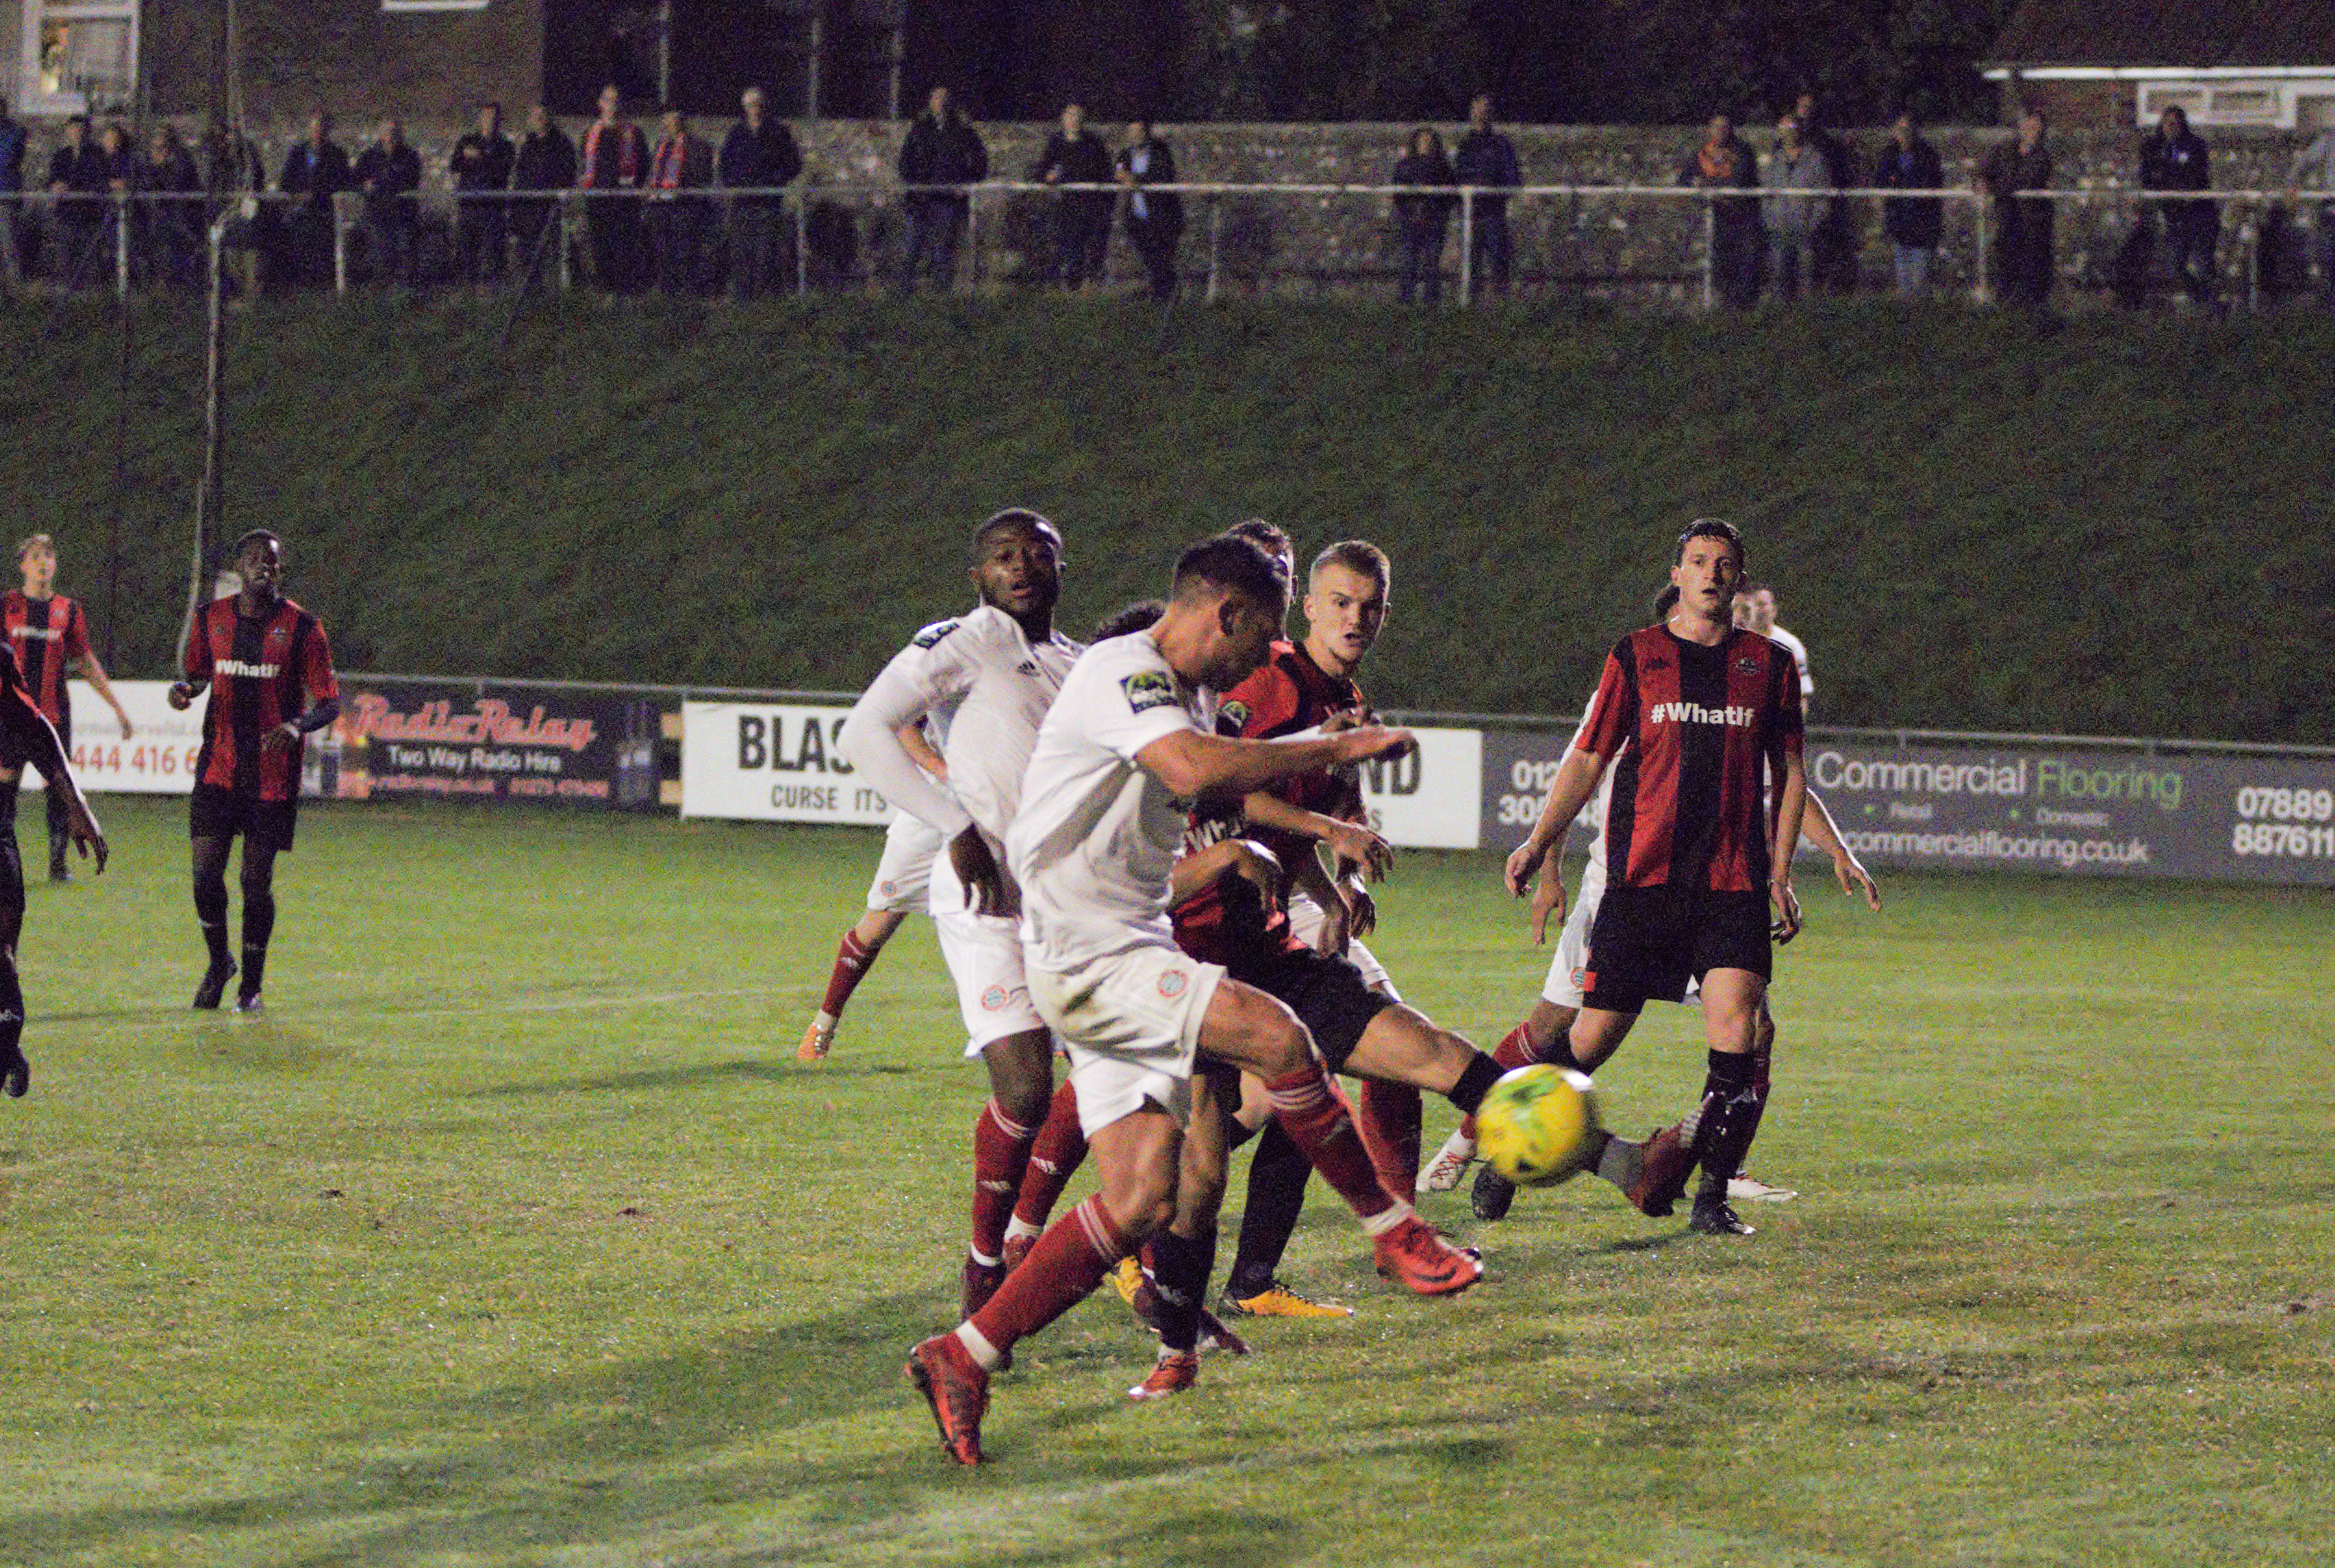 Read the full article - Gallery: Lewes [A] – League